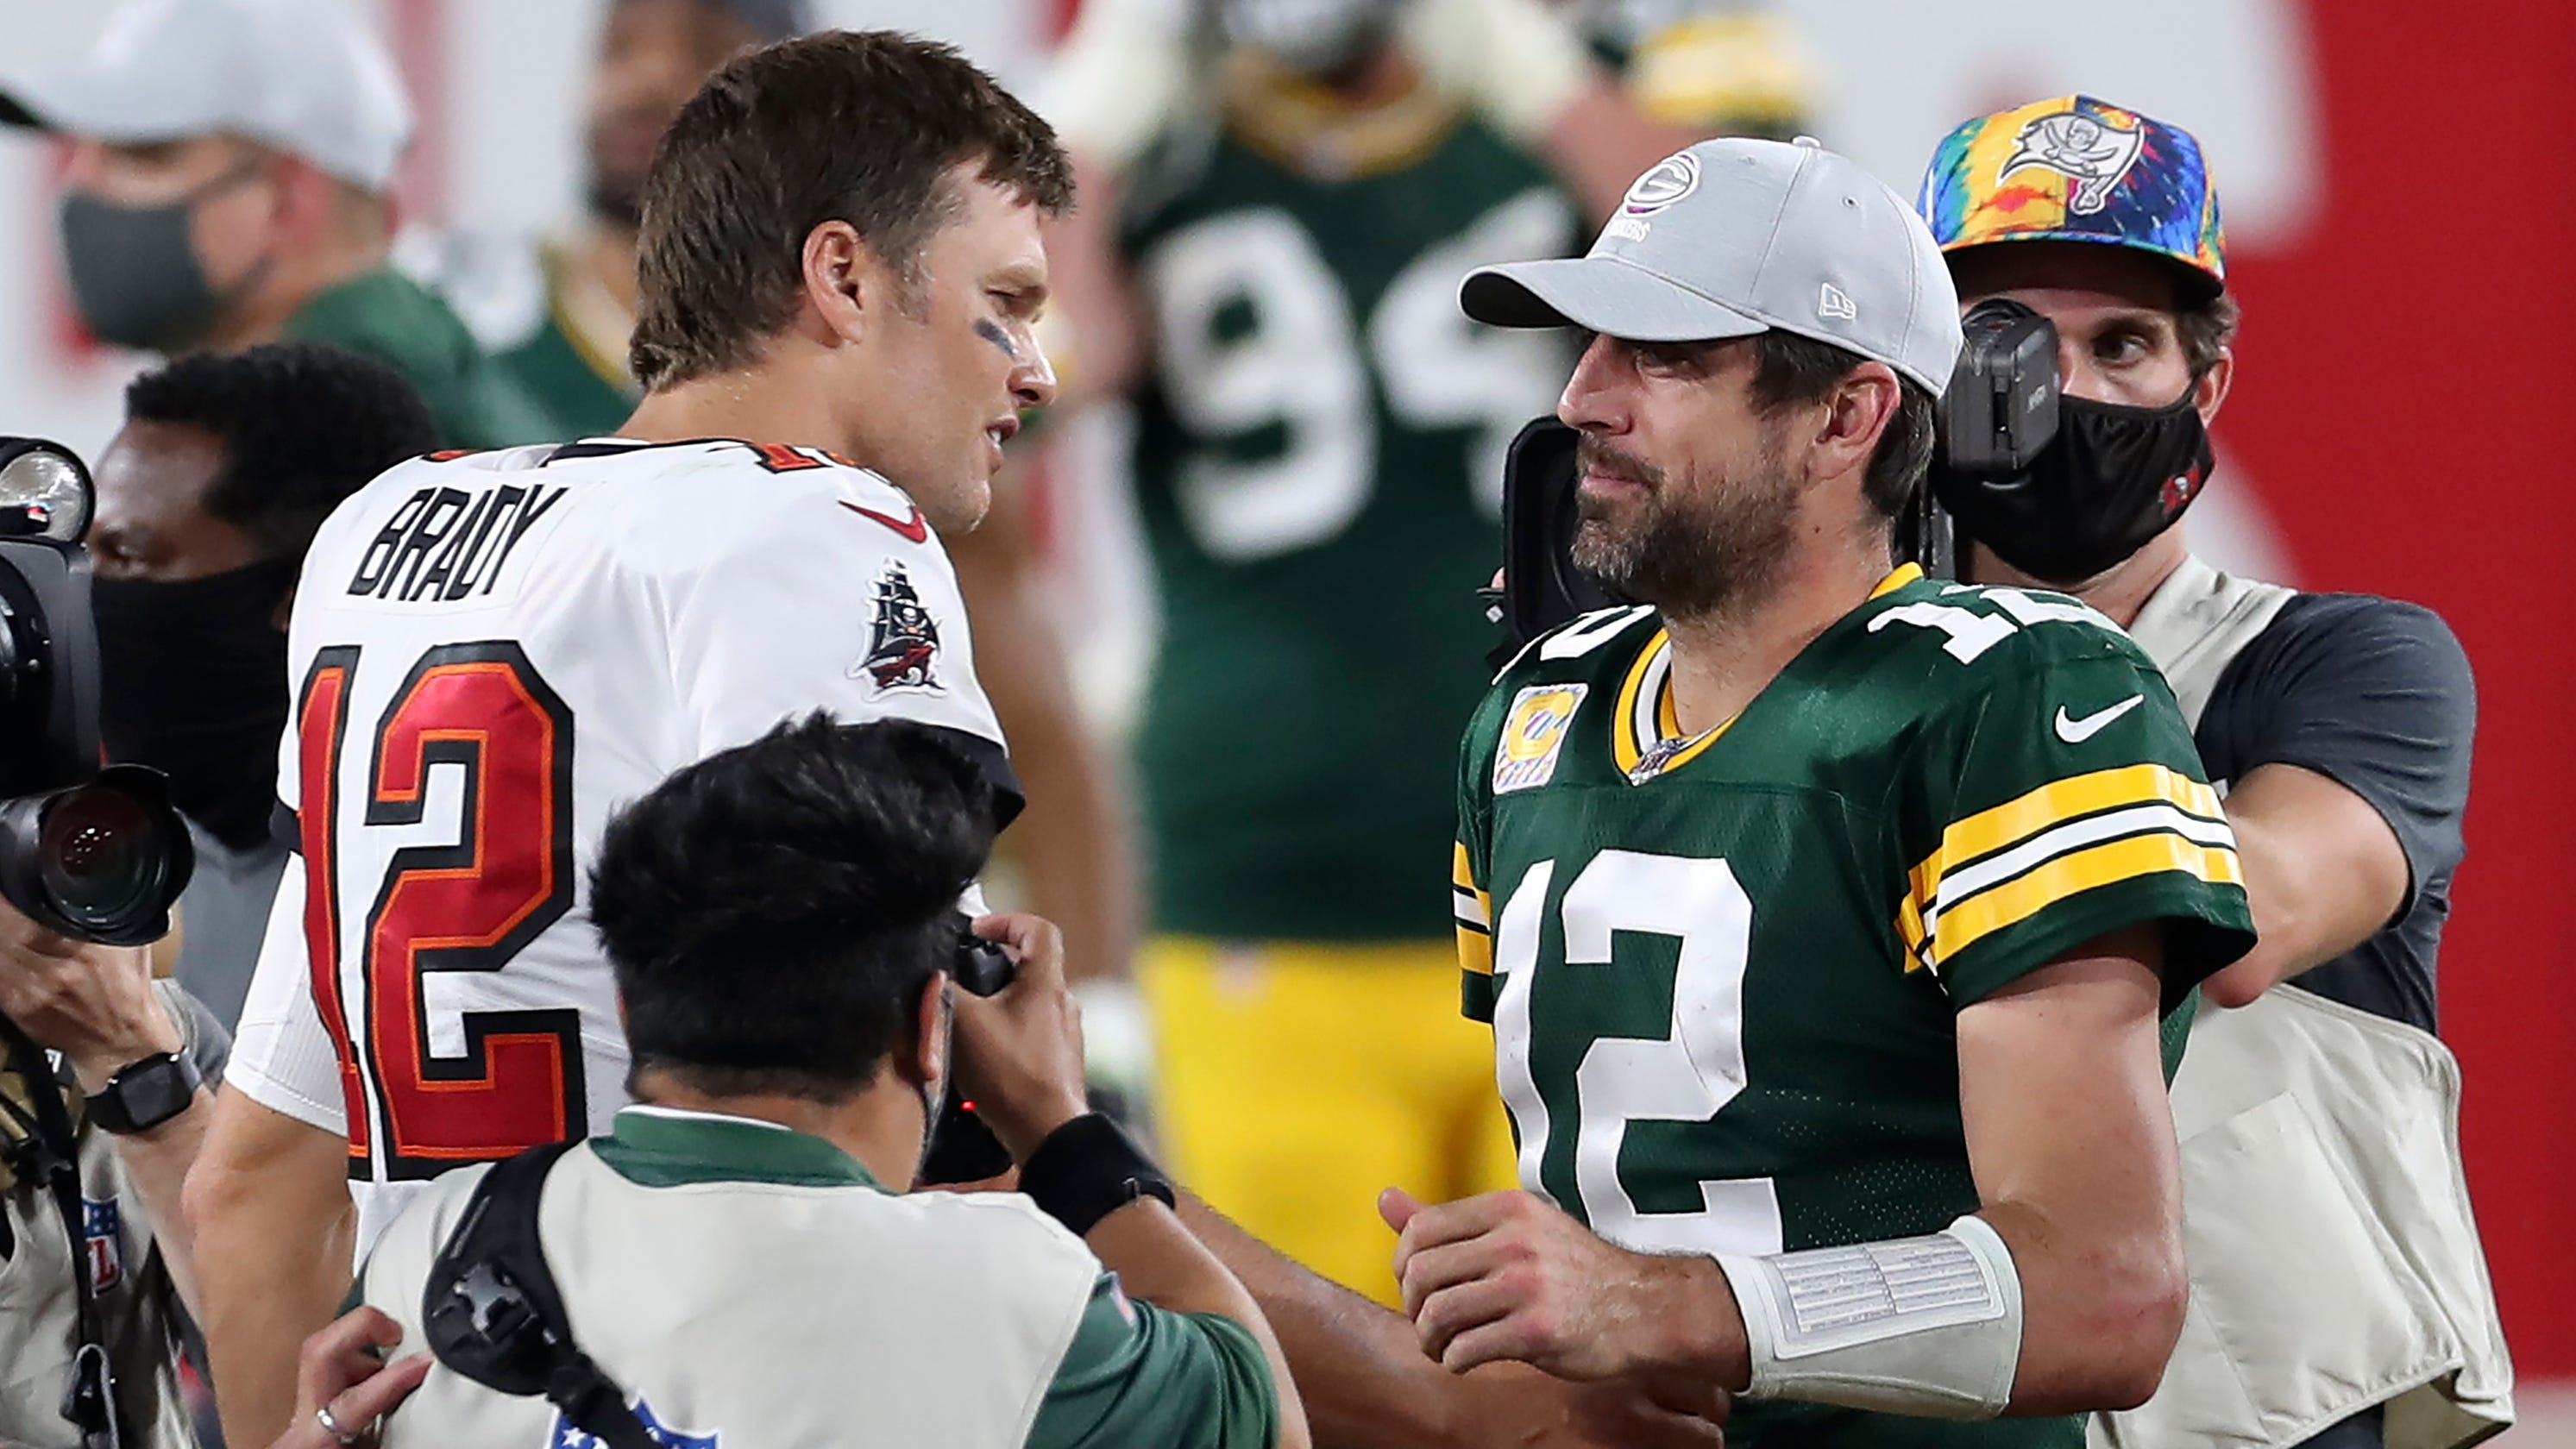 Tom Brady weighs in on Aaron Rodgers' dispute with Packers: 'I respect Aaron a lot'